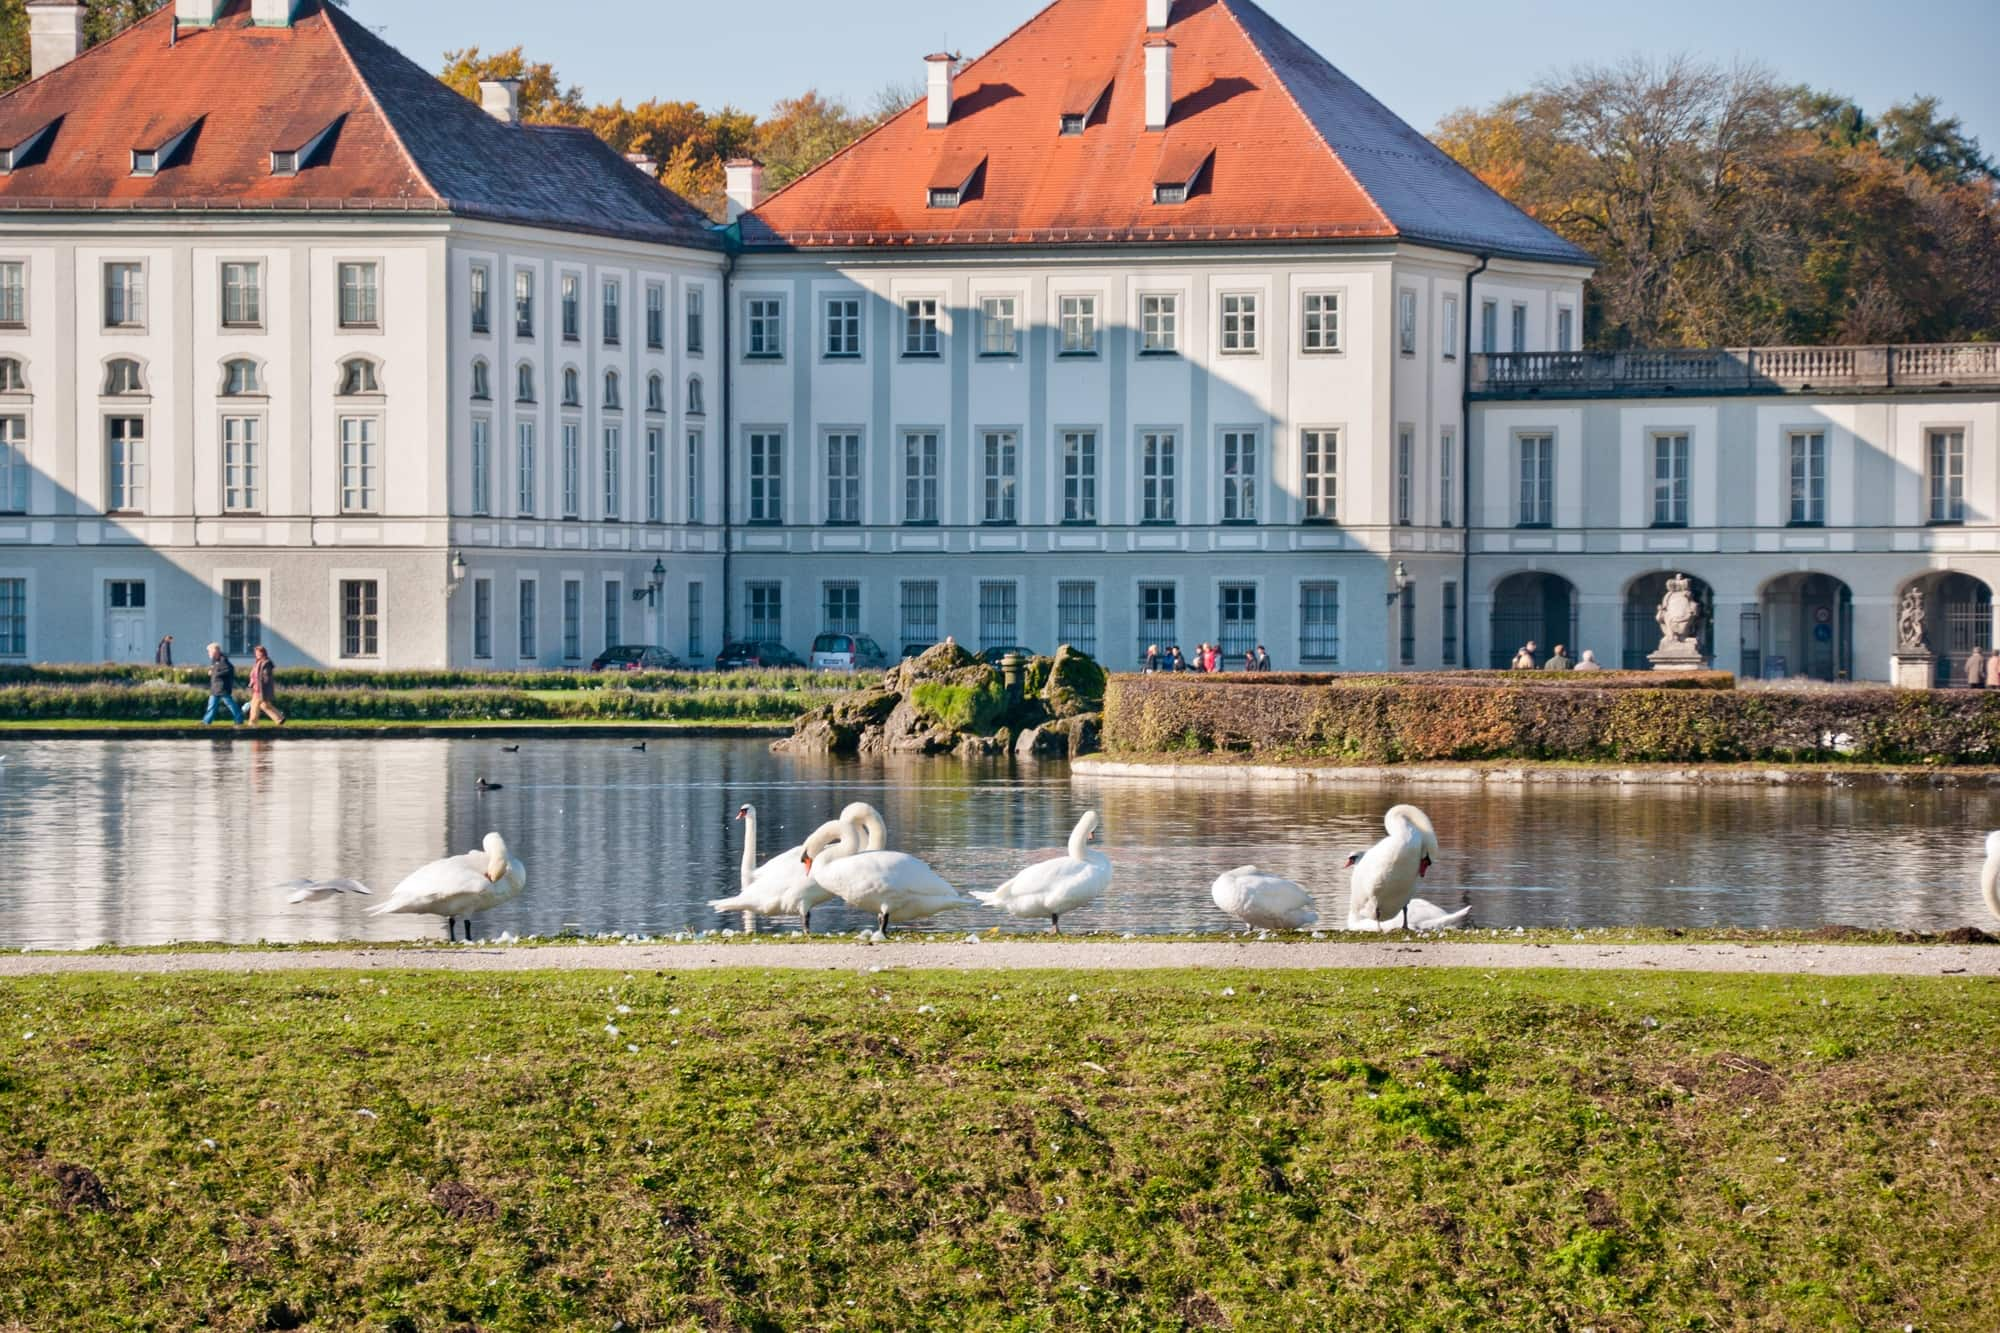 birds stand at a lake in front of the Nymphenburg Palace